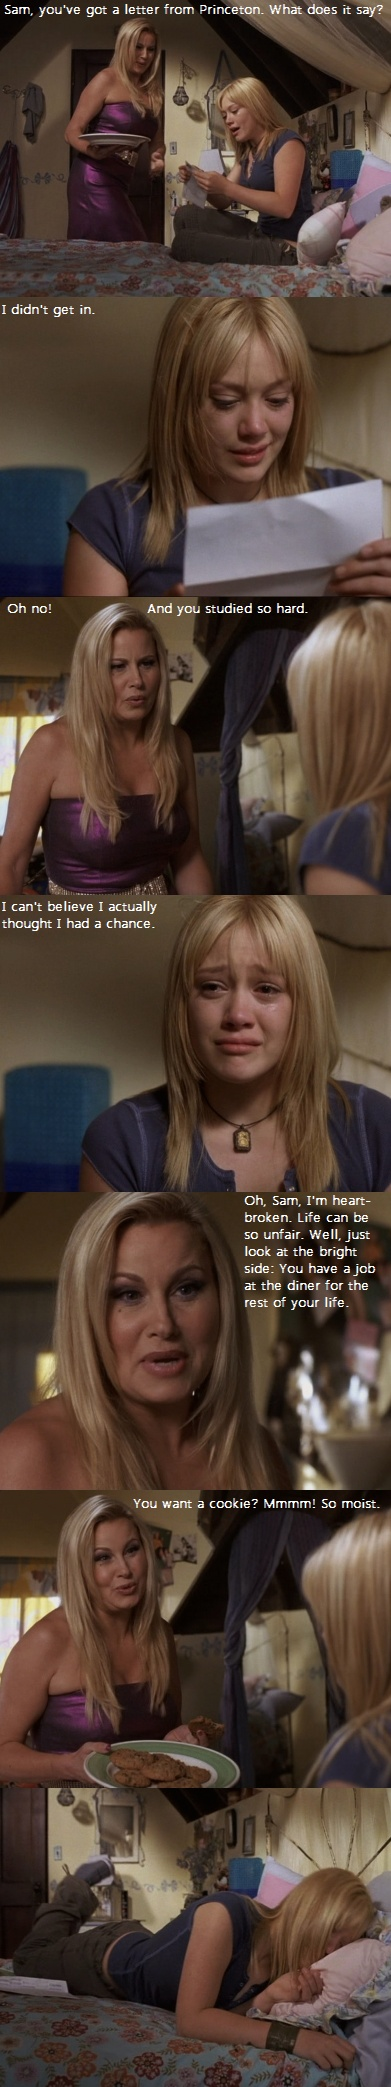 Mmm, so moist! From #A Cinderella Story haha this kills me lol!